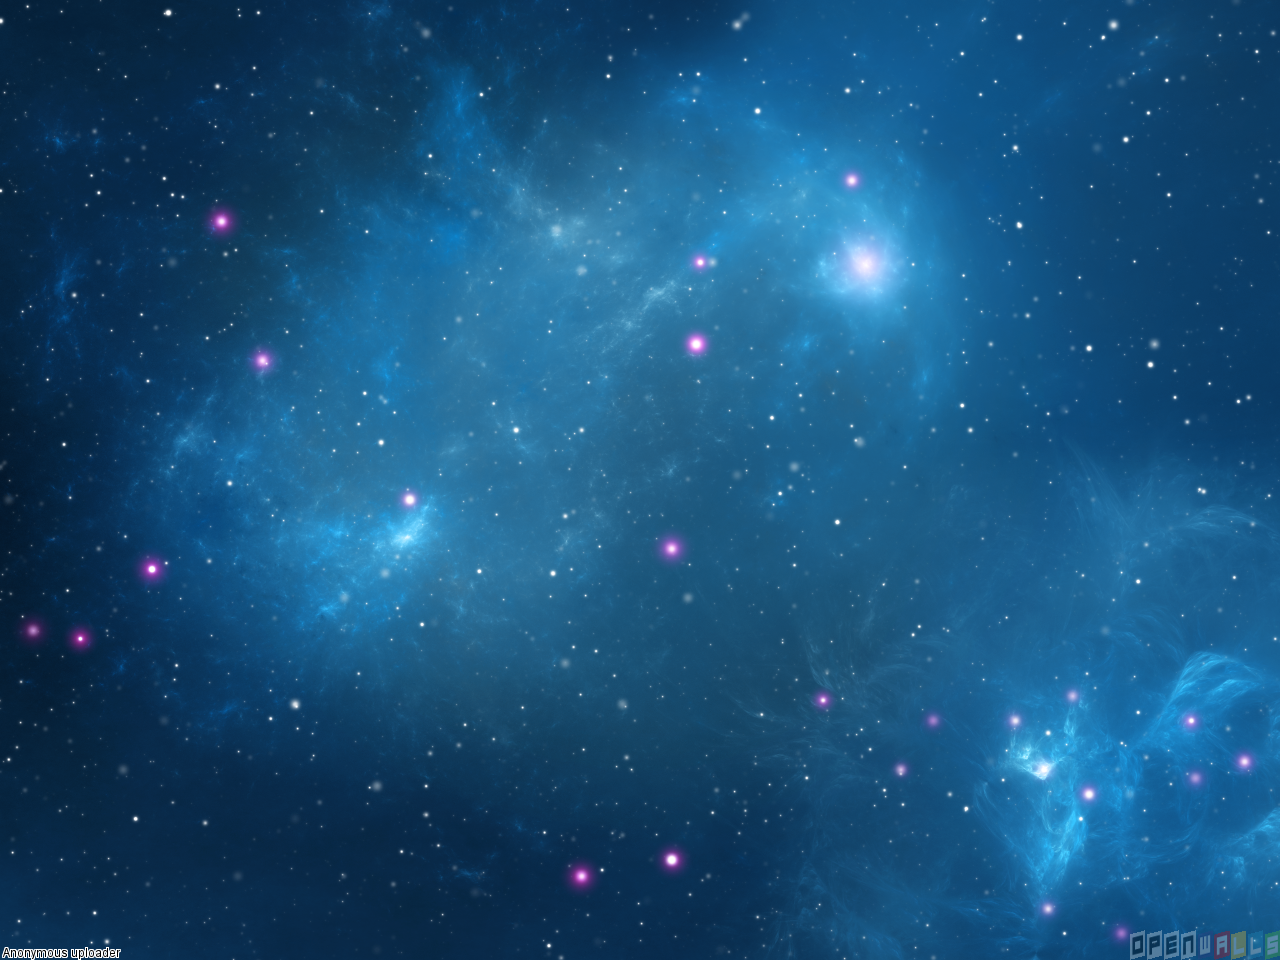 Blue space wallpaper 14339   Open Walls 1280x960